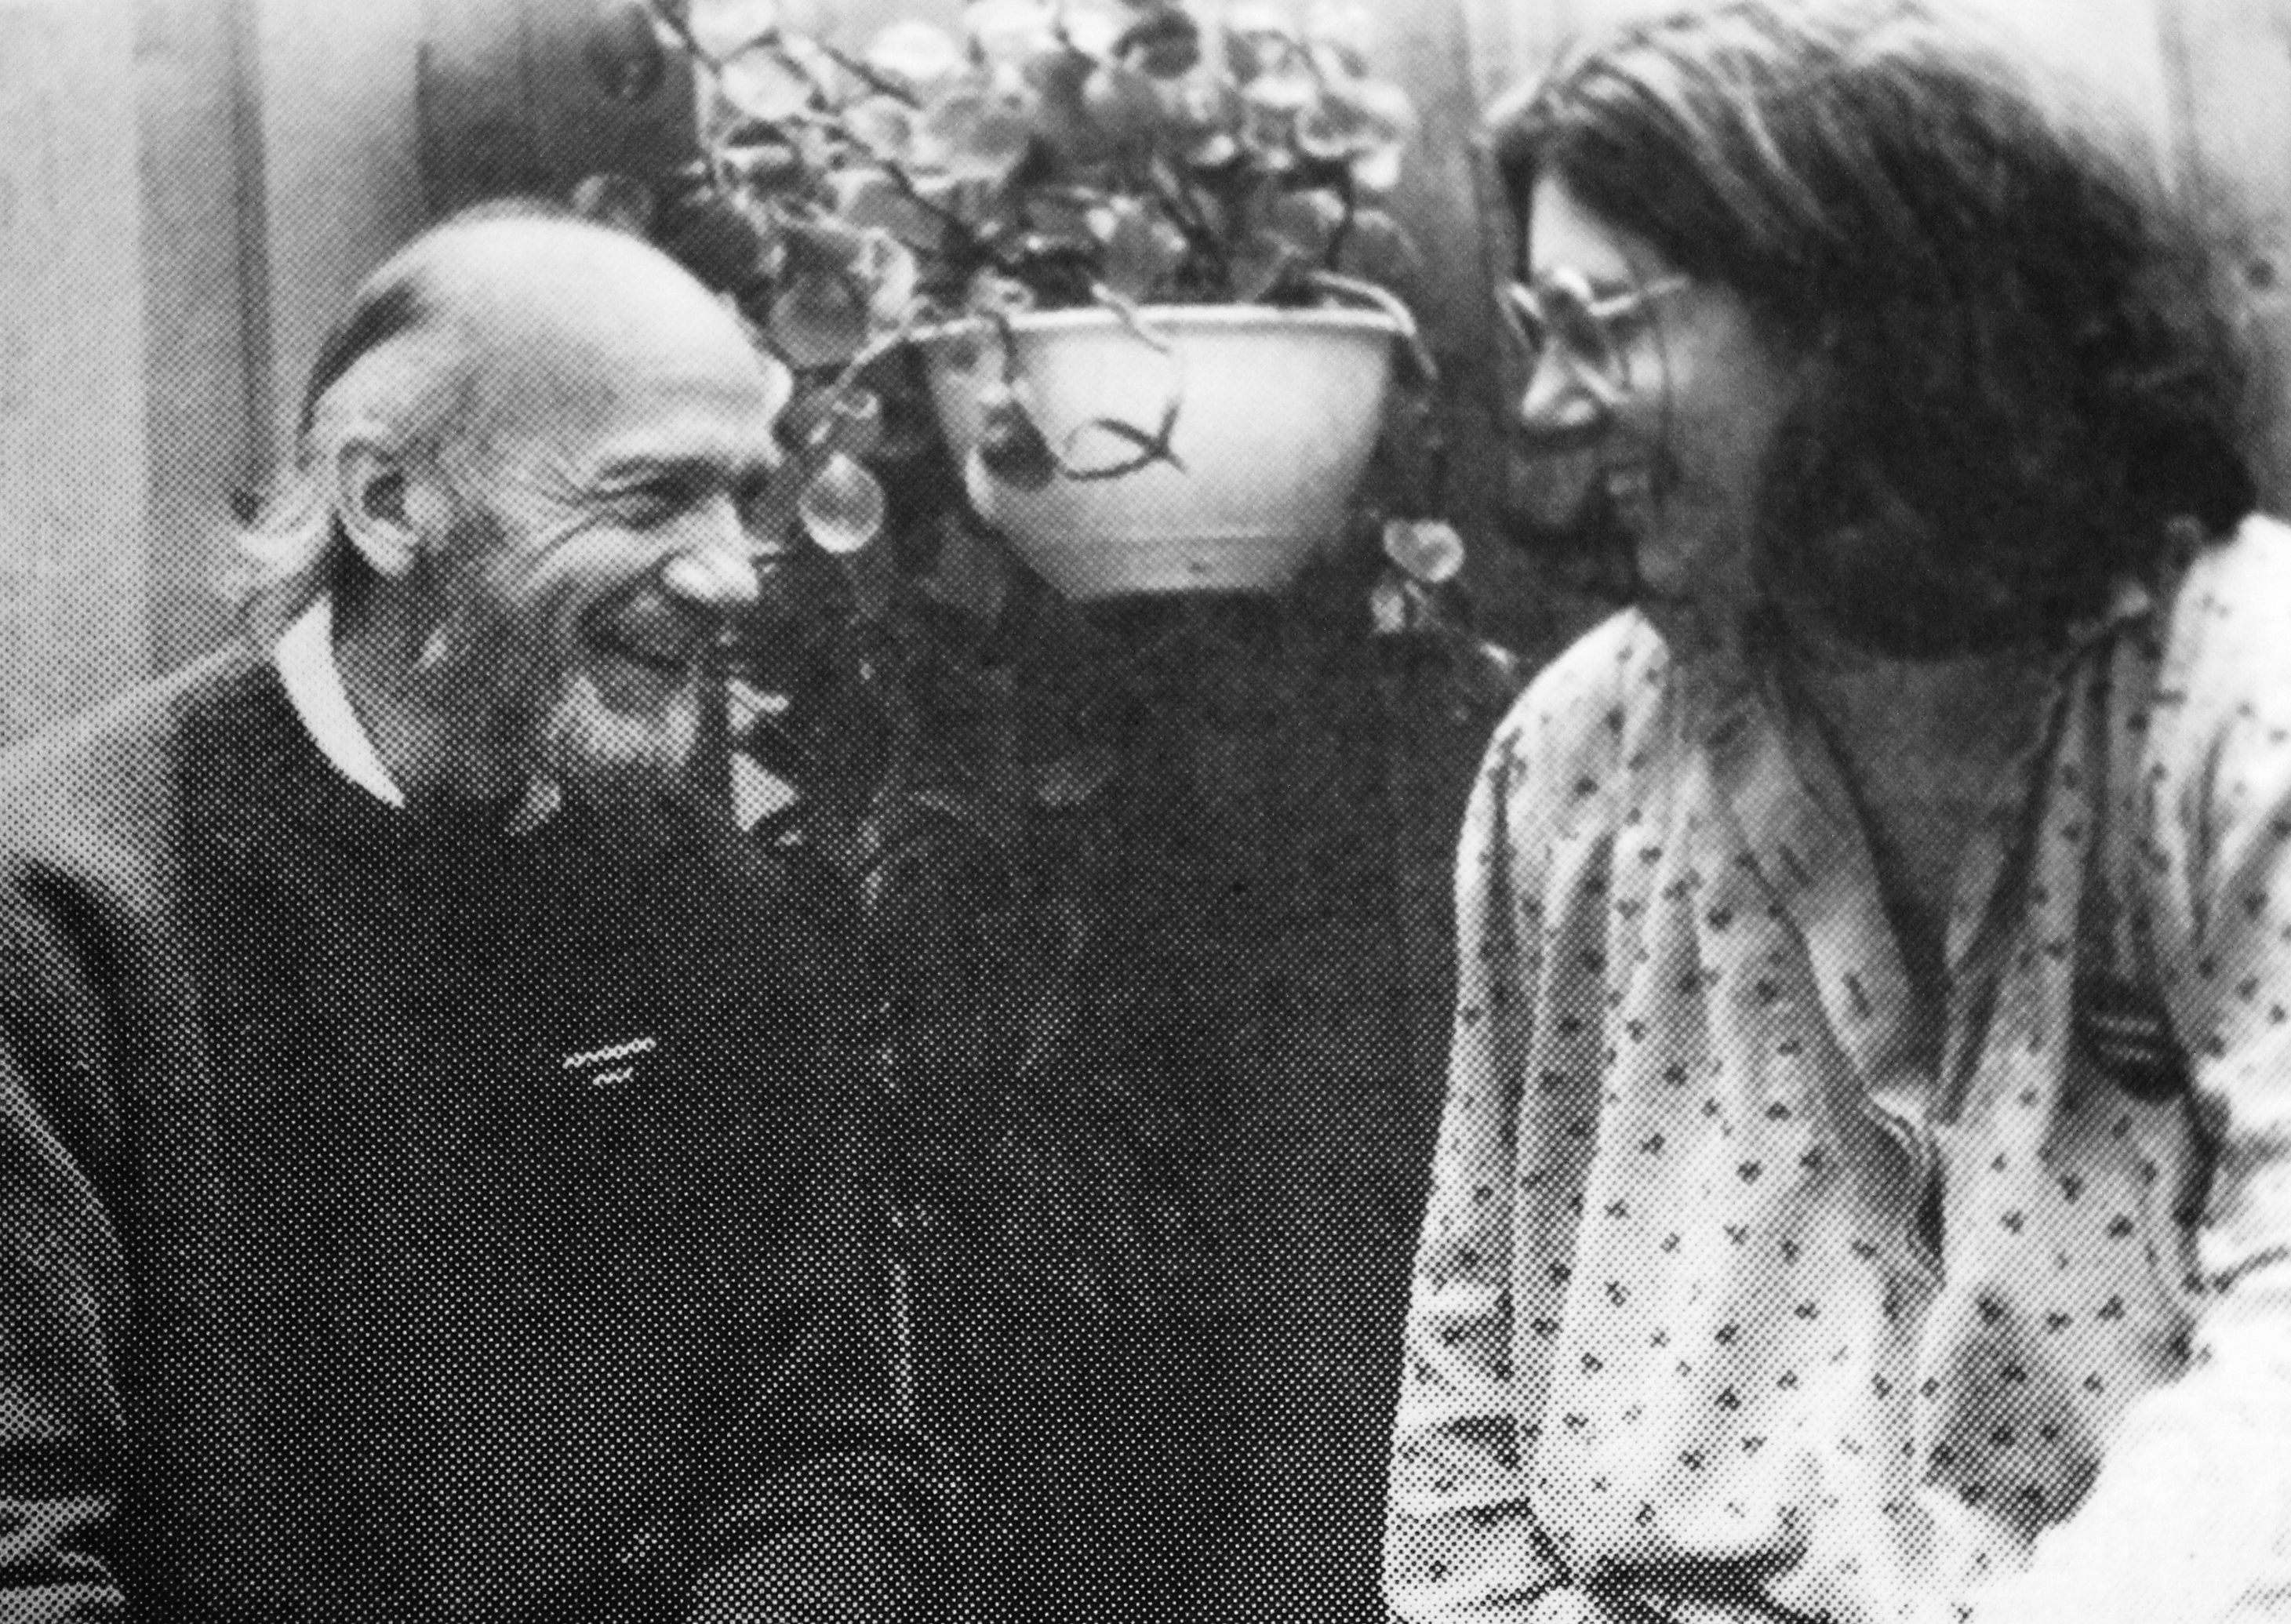 balding bearded man on left and dark haired woman with glasses on right